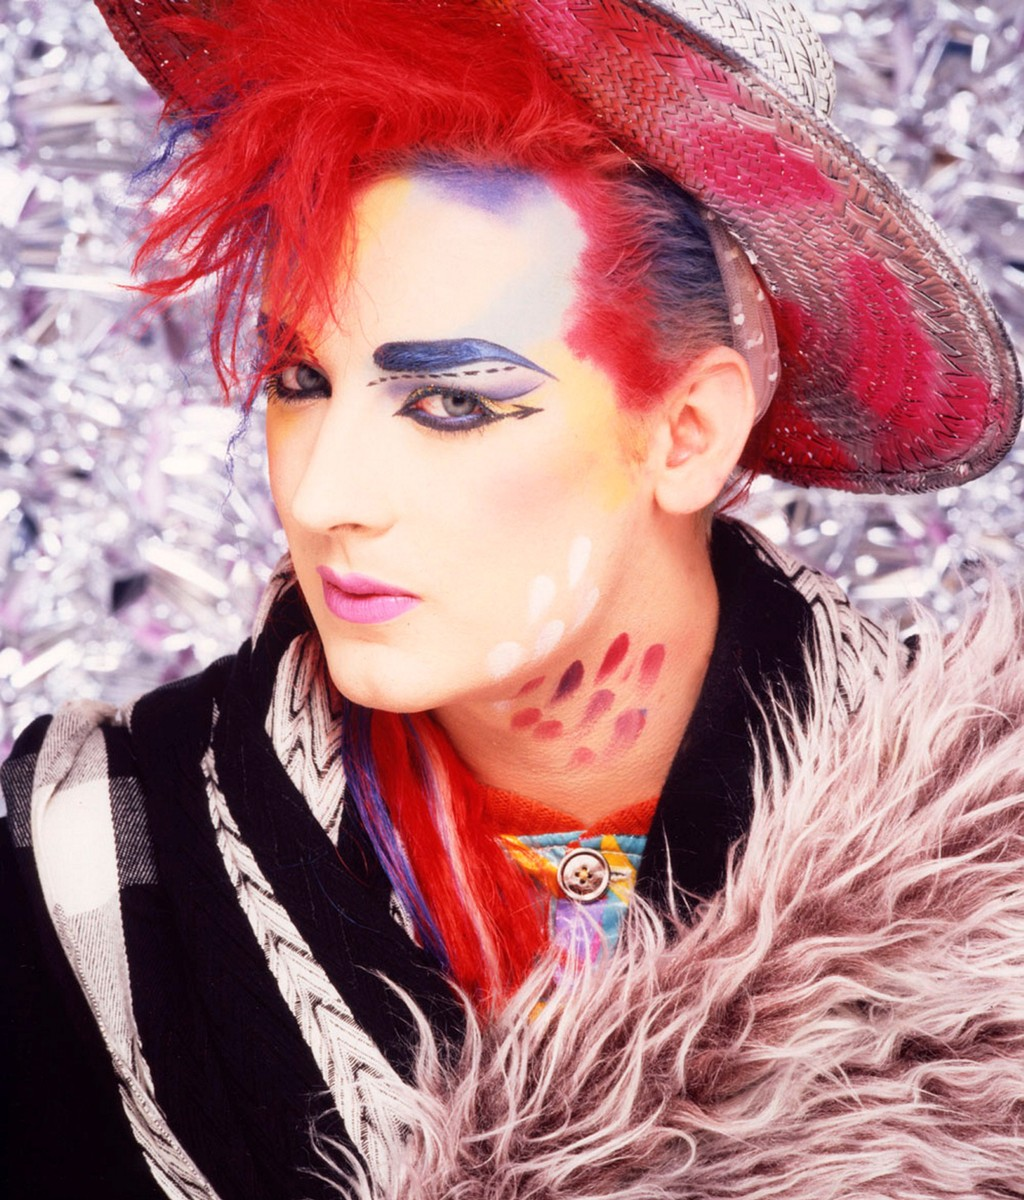 Boy George from Culture Club posed in London in 1984.